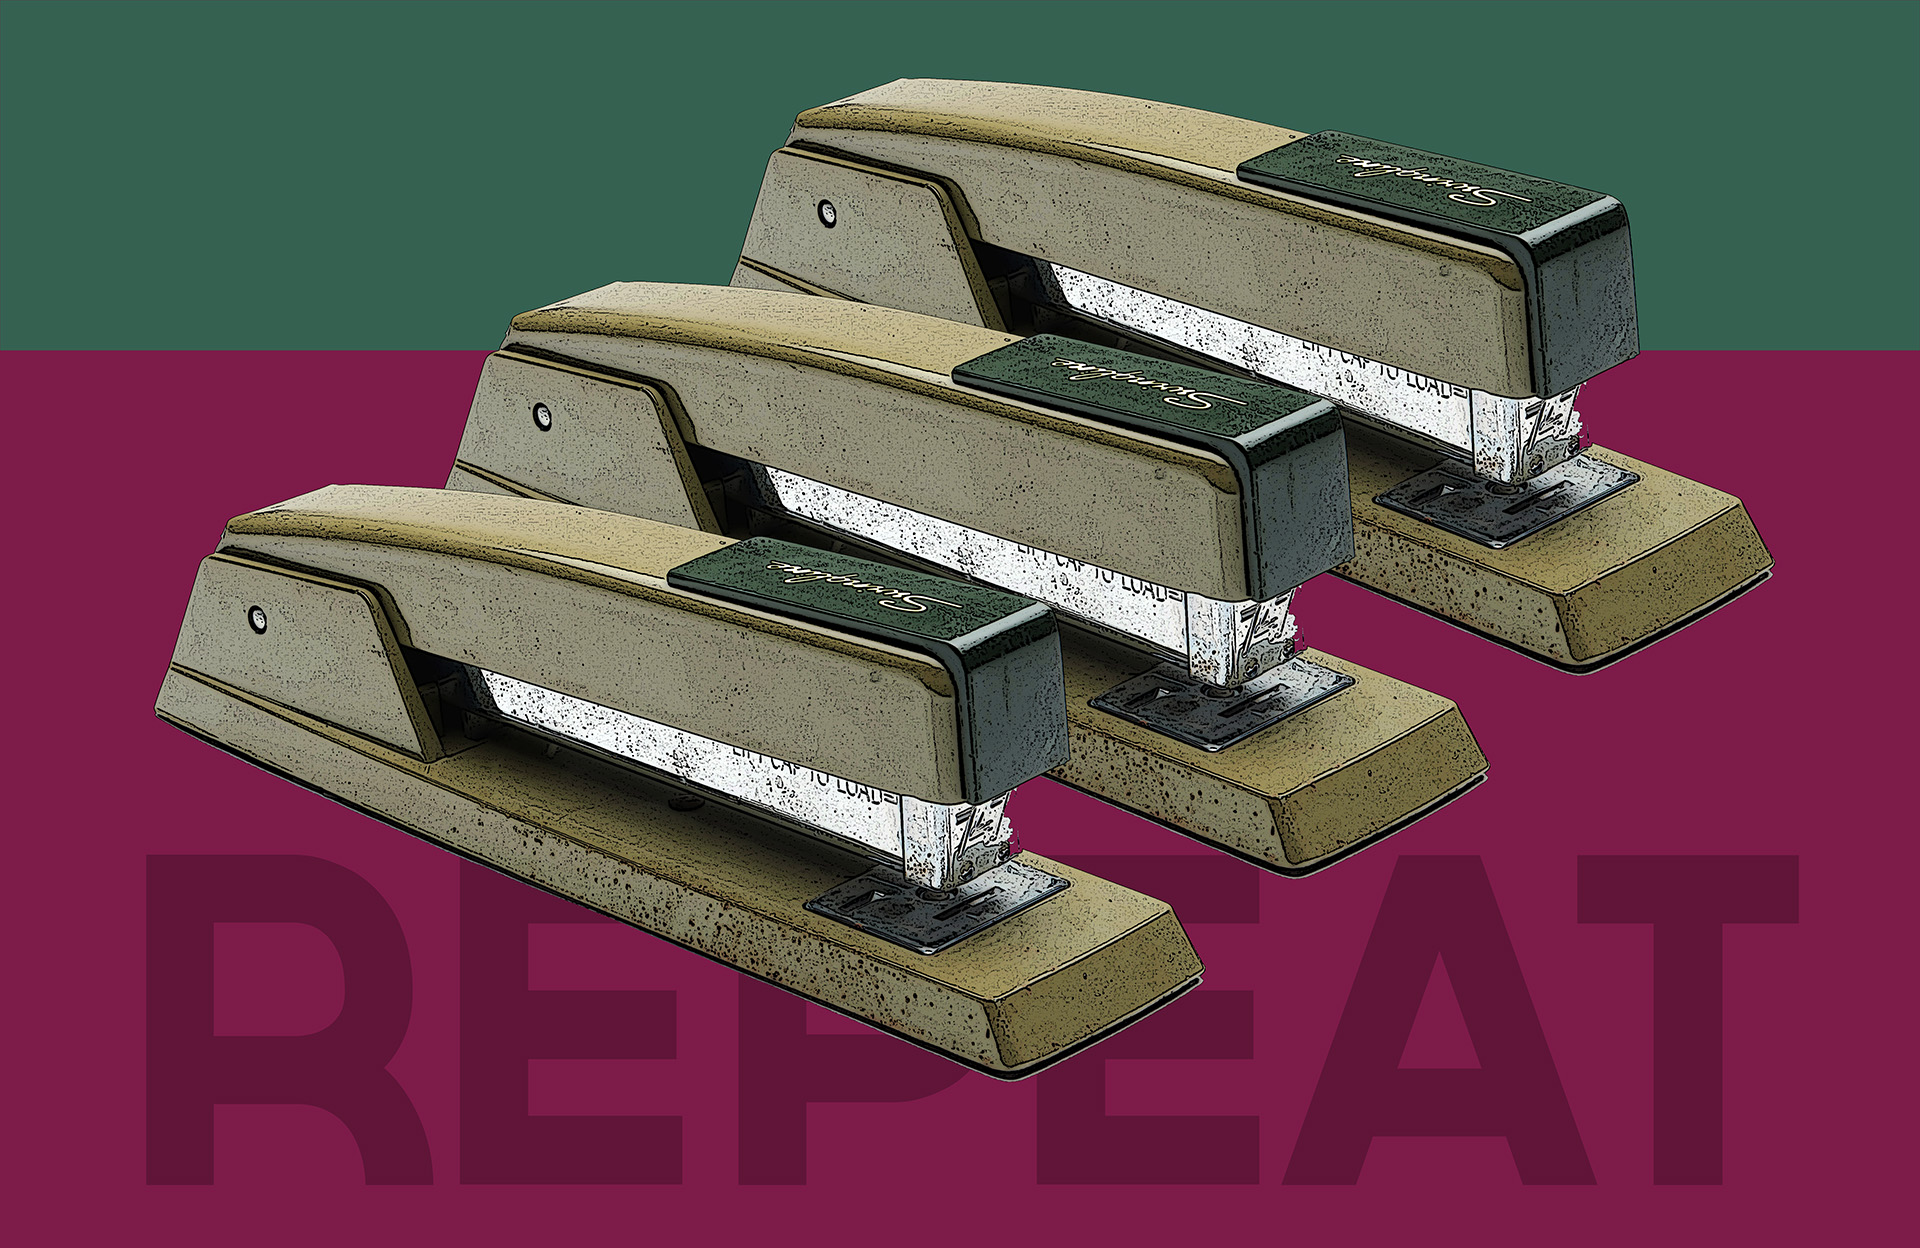 151118-stapler-repeat